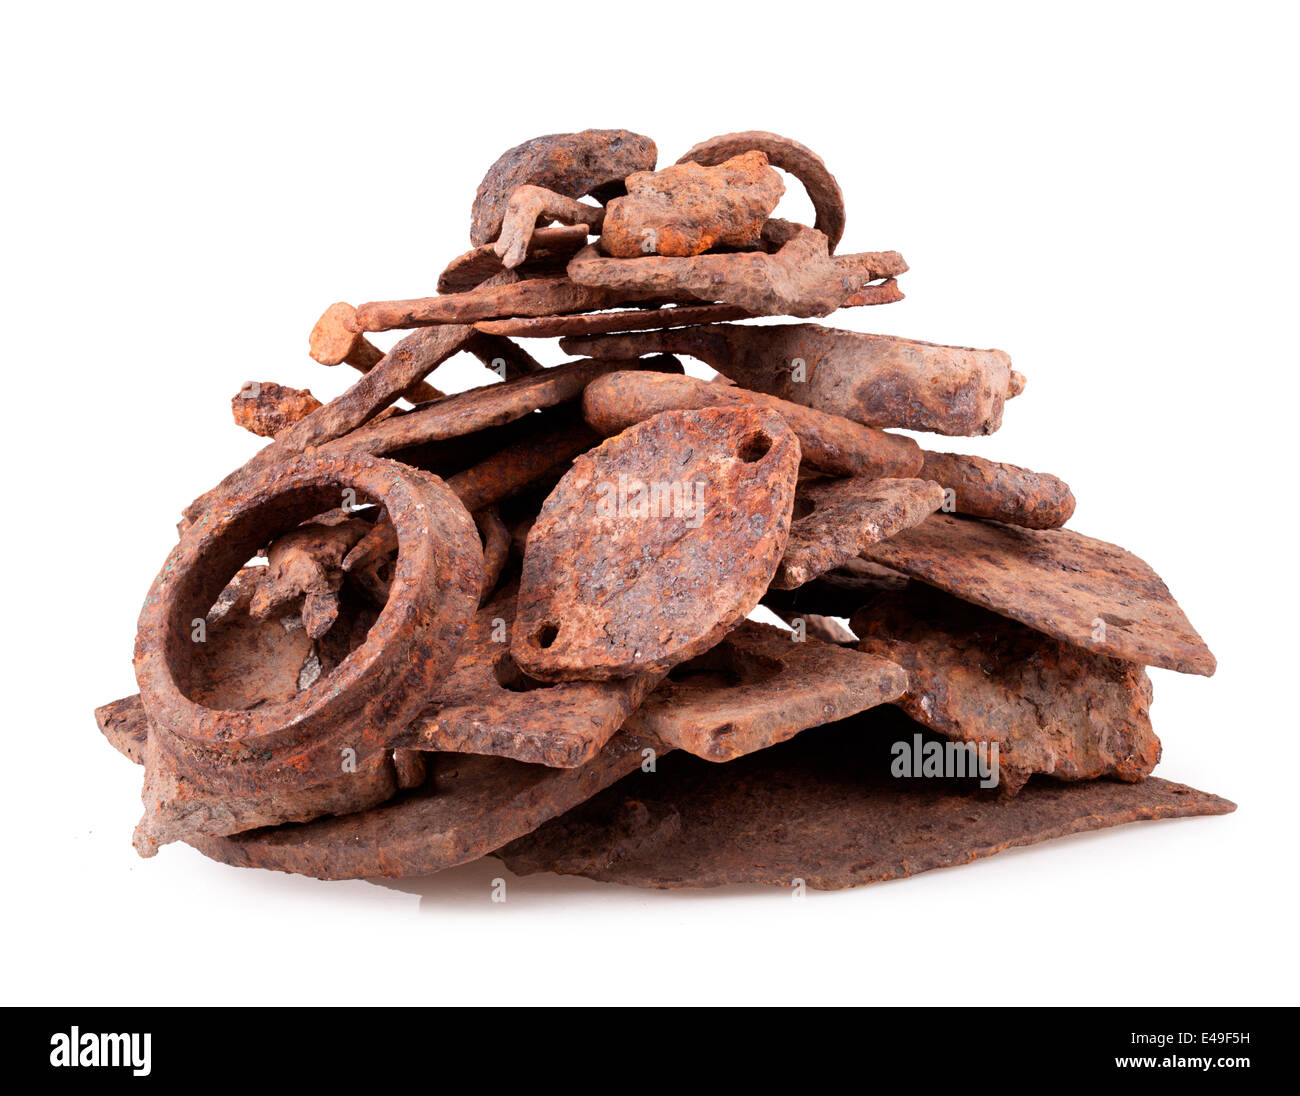 isolated on white background rusty iron scrap metal - Stock Image